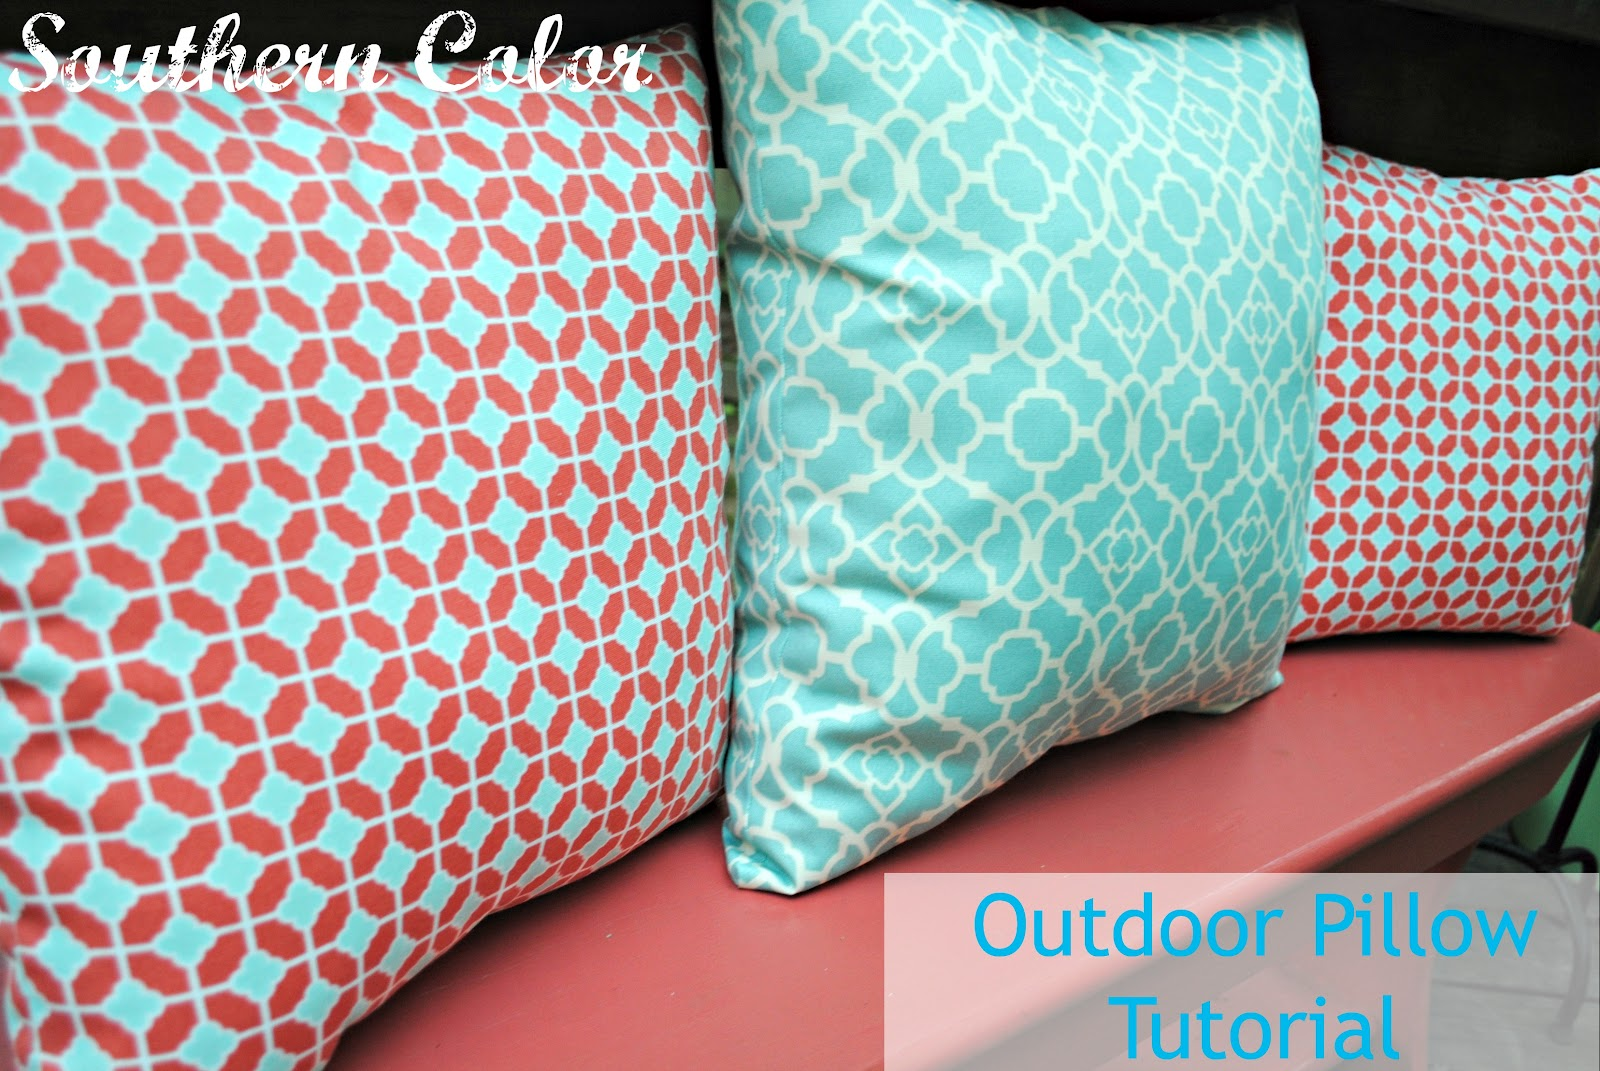 Southern Color: Outdoor Pillow Tutorial